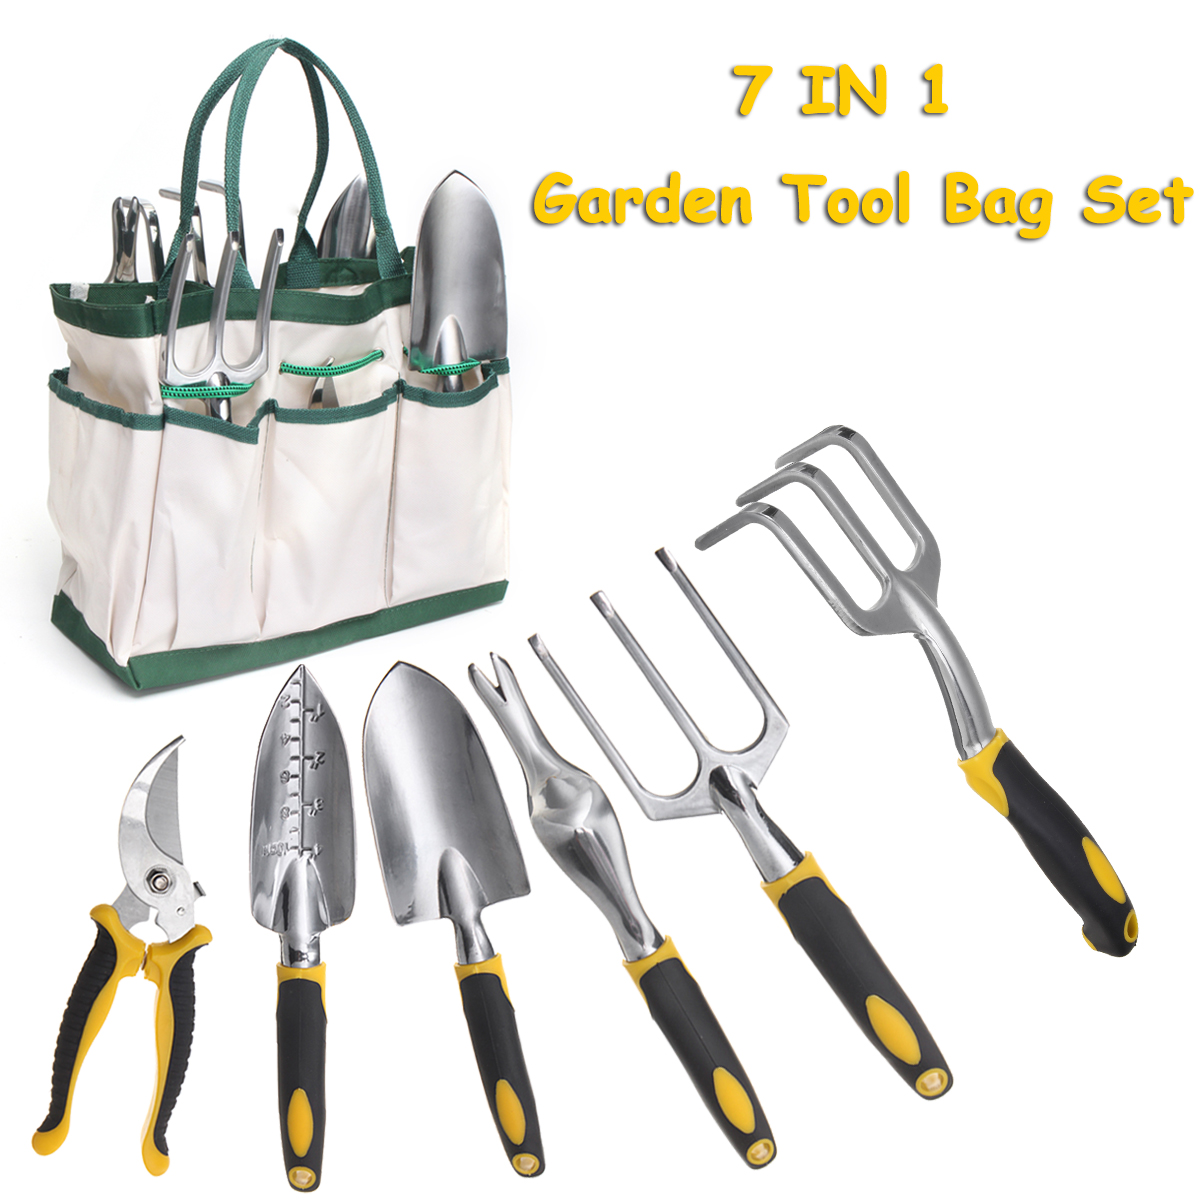 7Pcs Garden Tool Set Stainless Steel Tool Set Planting Tools Pliers with Folding Bag Weeding Fork Trowel Soil Scoop Cultivator 3pcs mini stainless steel garden tool set with soild wood handle